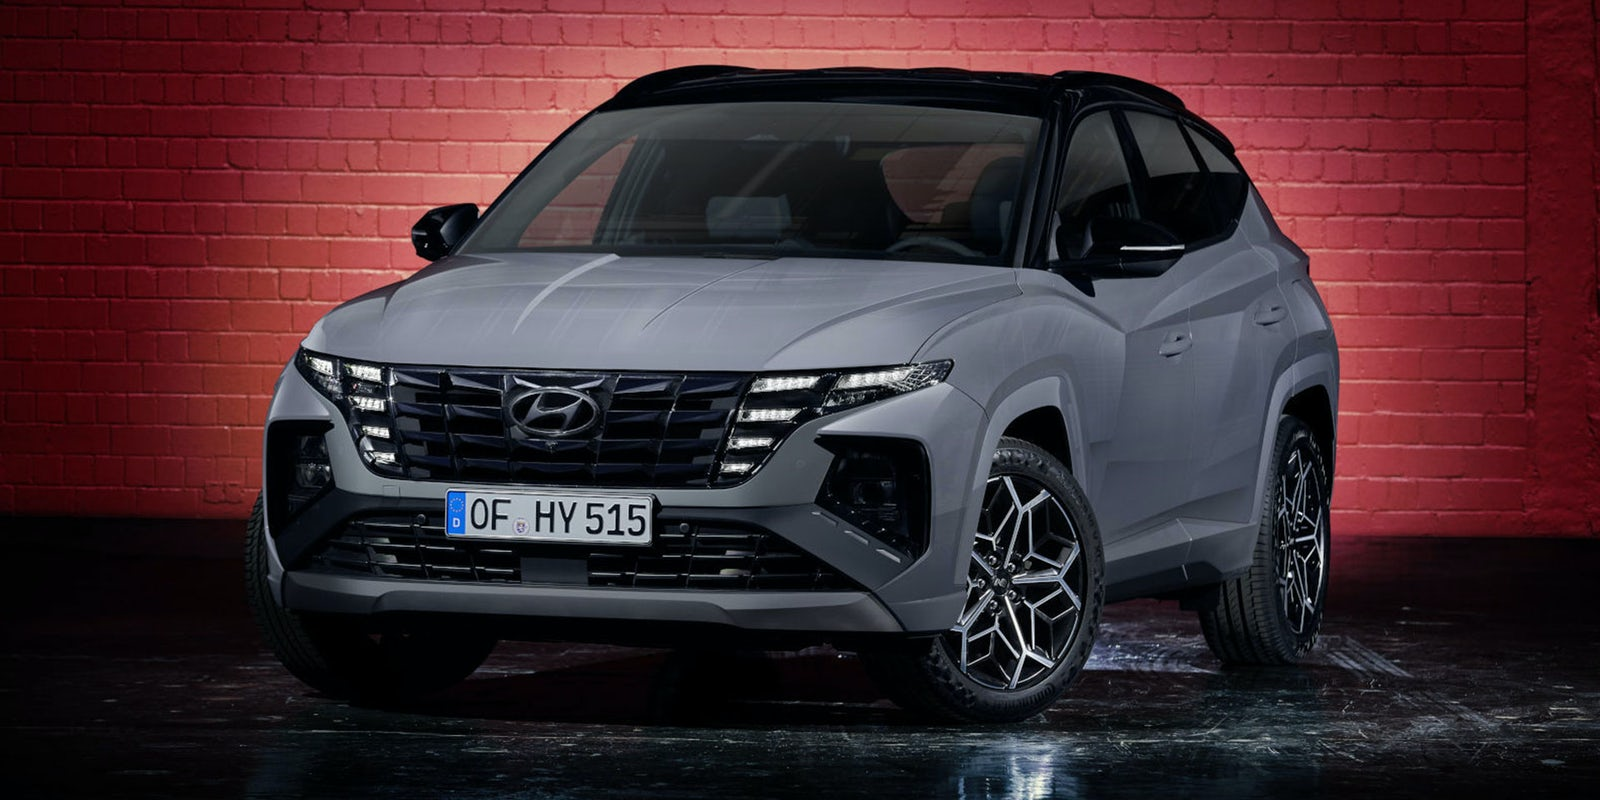 2021 Hyundai Tucson N Line Revealed Price Specs And Release Date Carwow